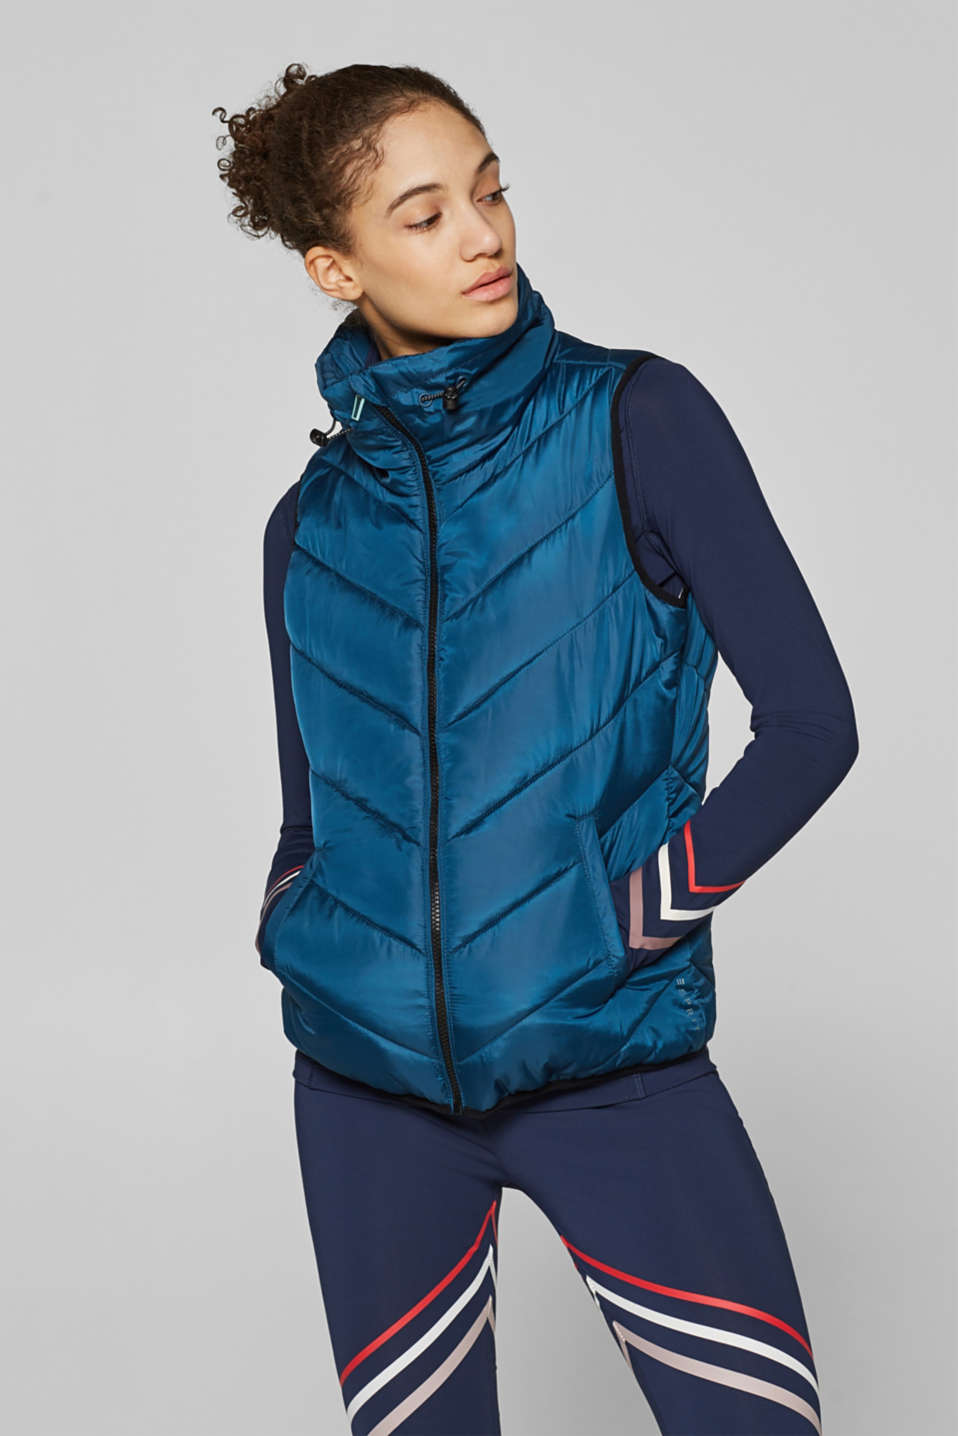 Esprit - Lightweight quilted body warmer with a stand-up collar